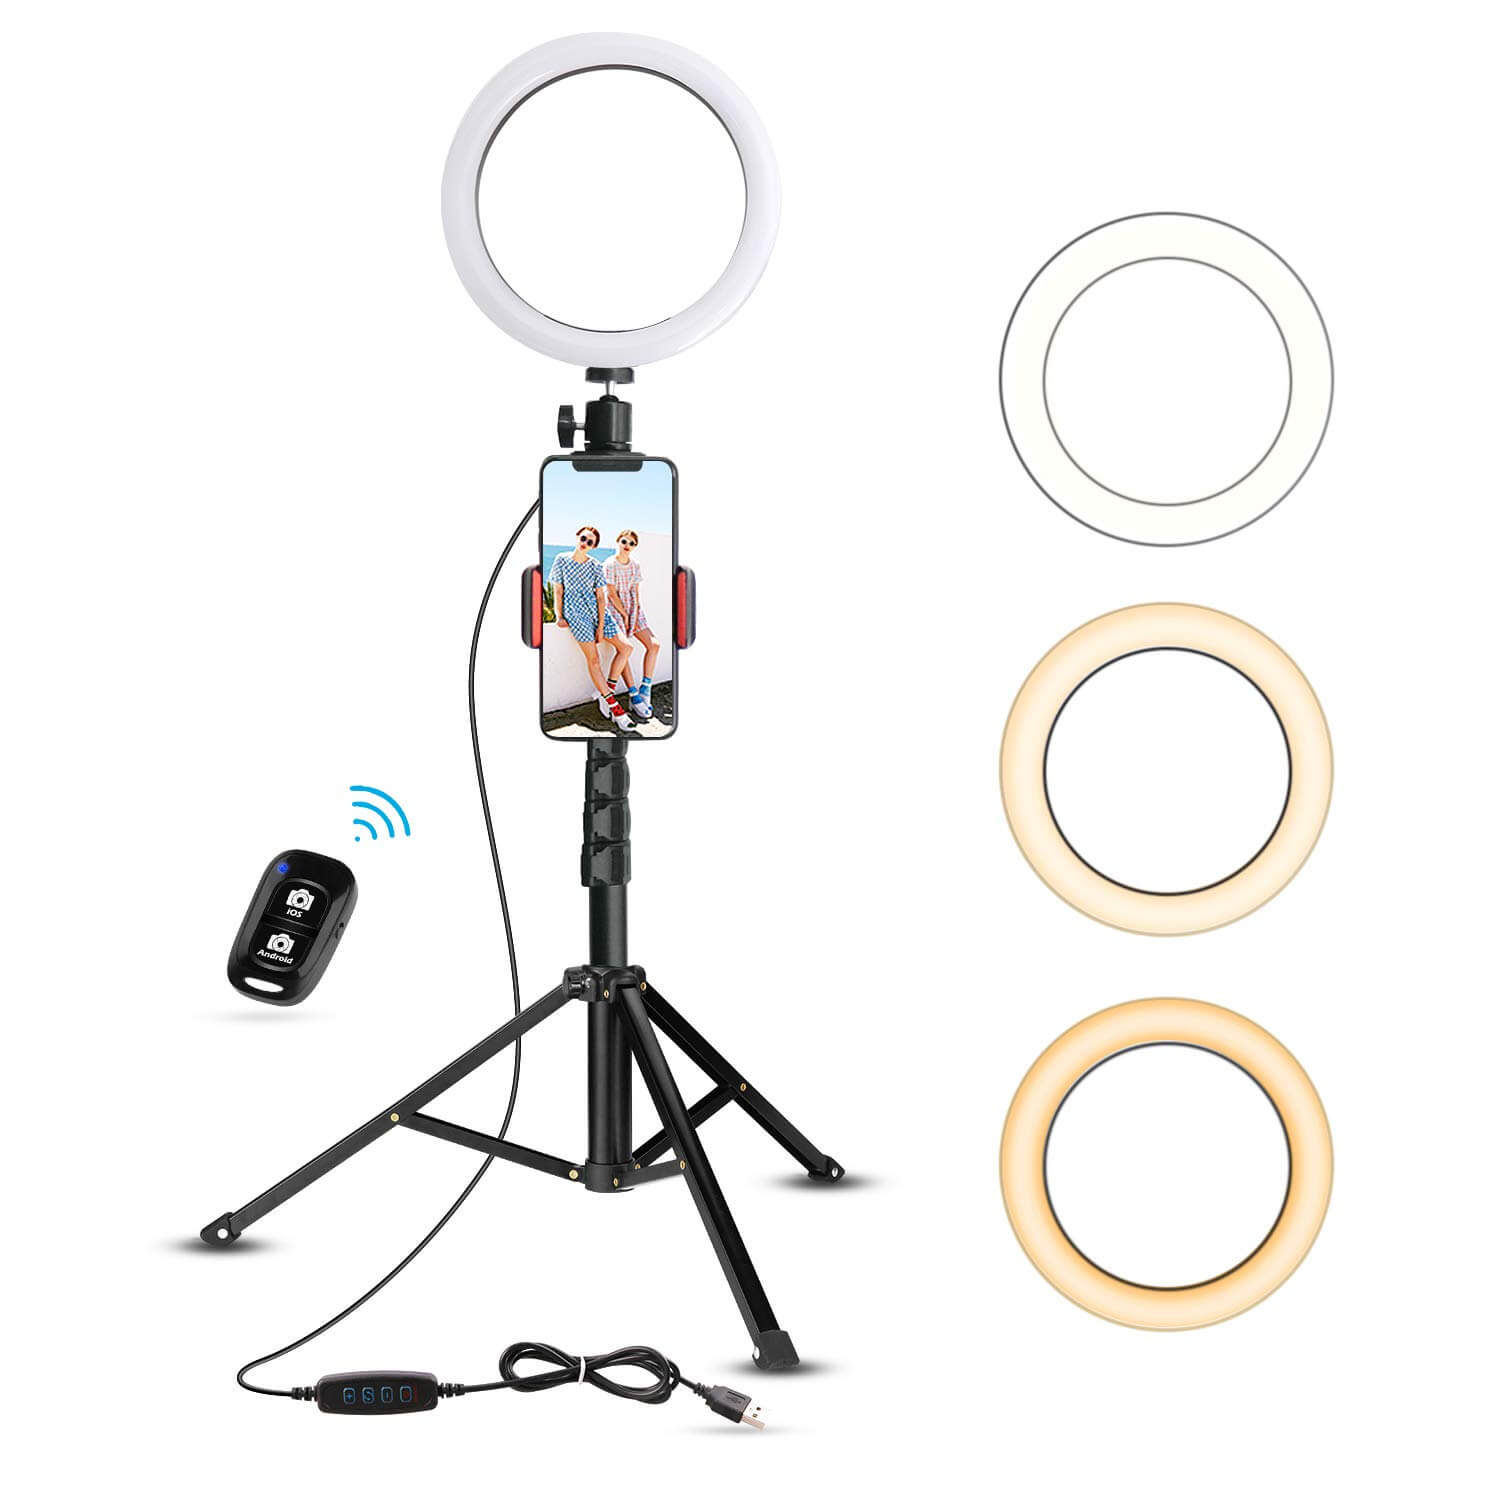 LED Ring Light With Clamp For iPhone Selfie Makeup Photography Video Live Stream